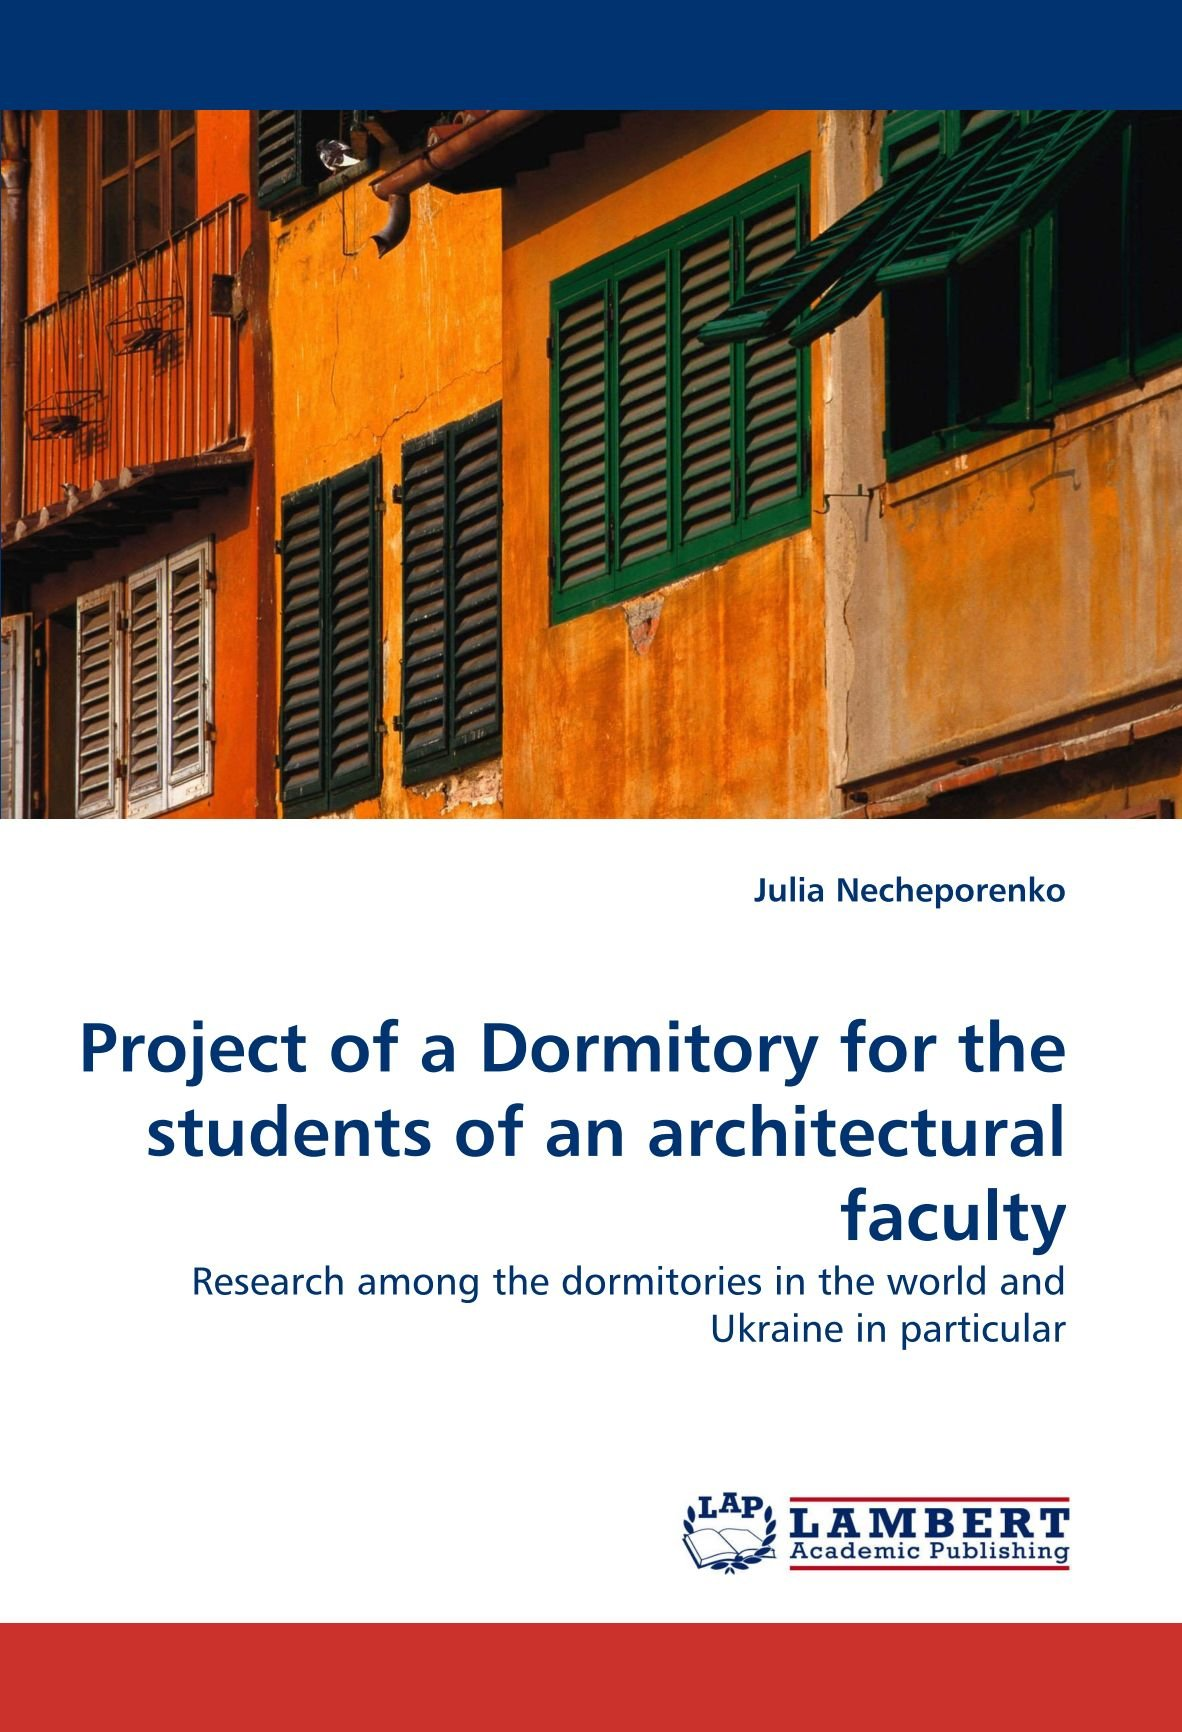 Project of a Dormitory for the students of an architectural